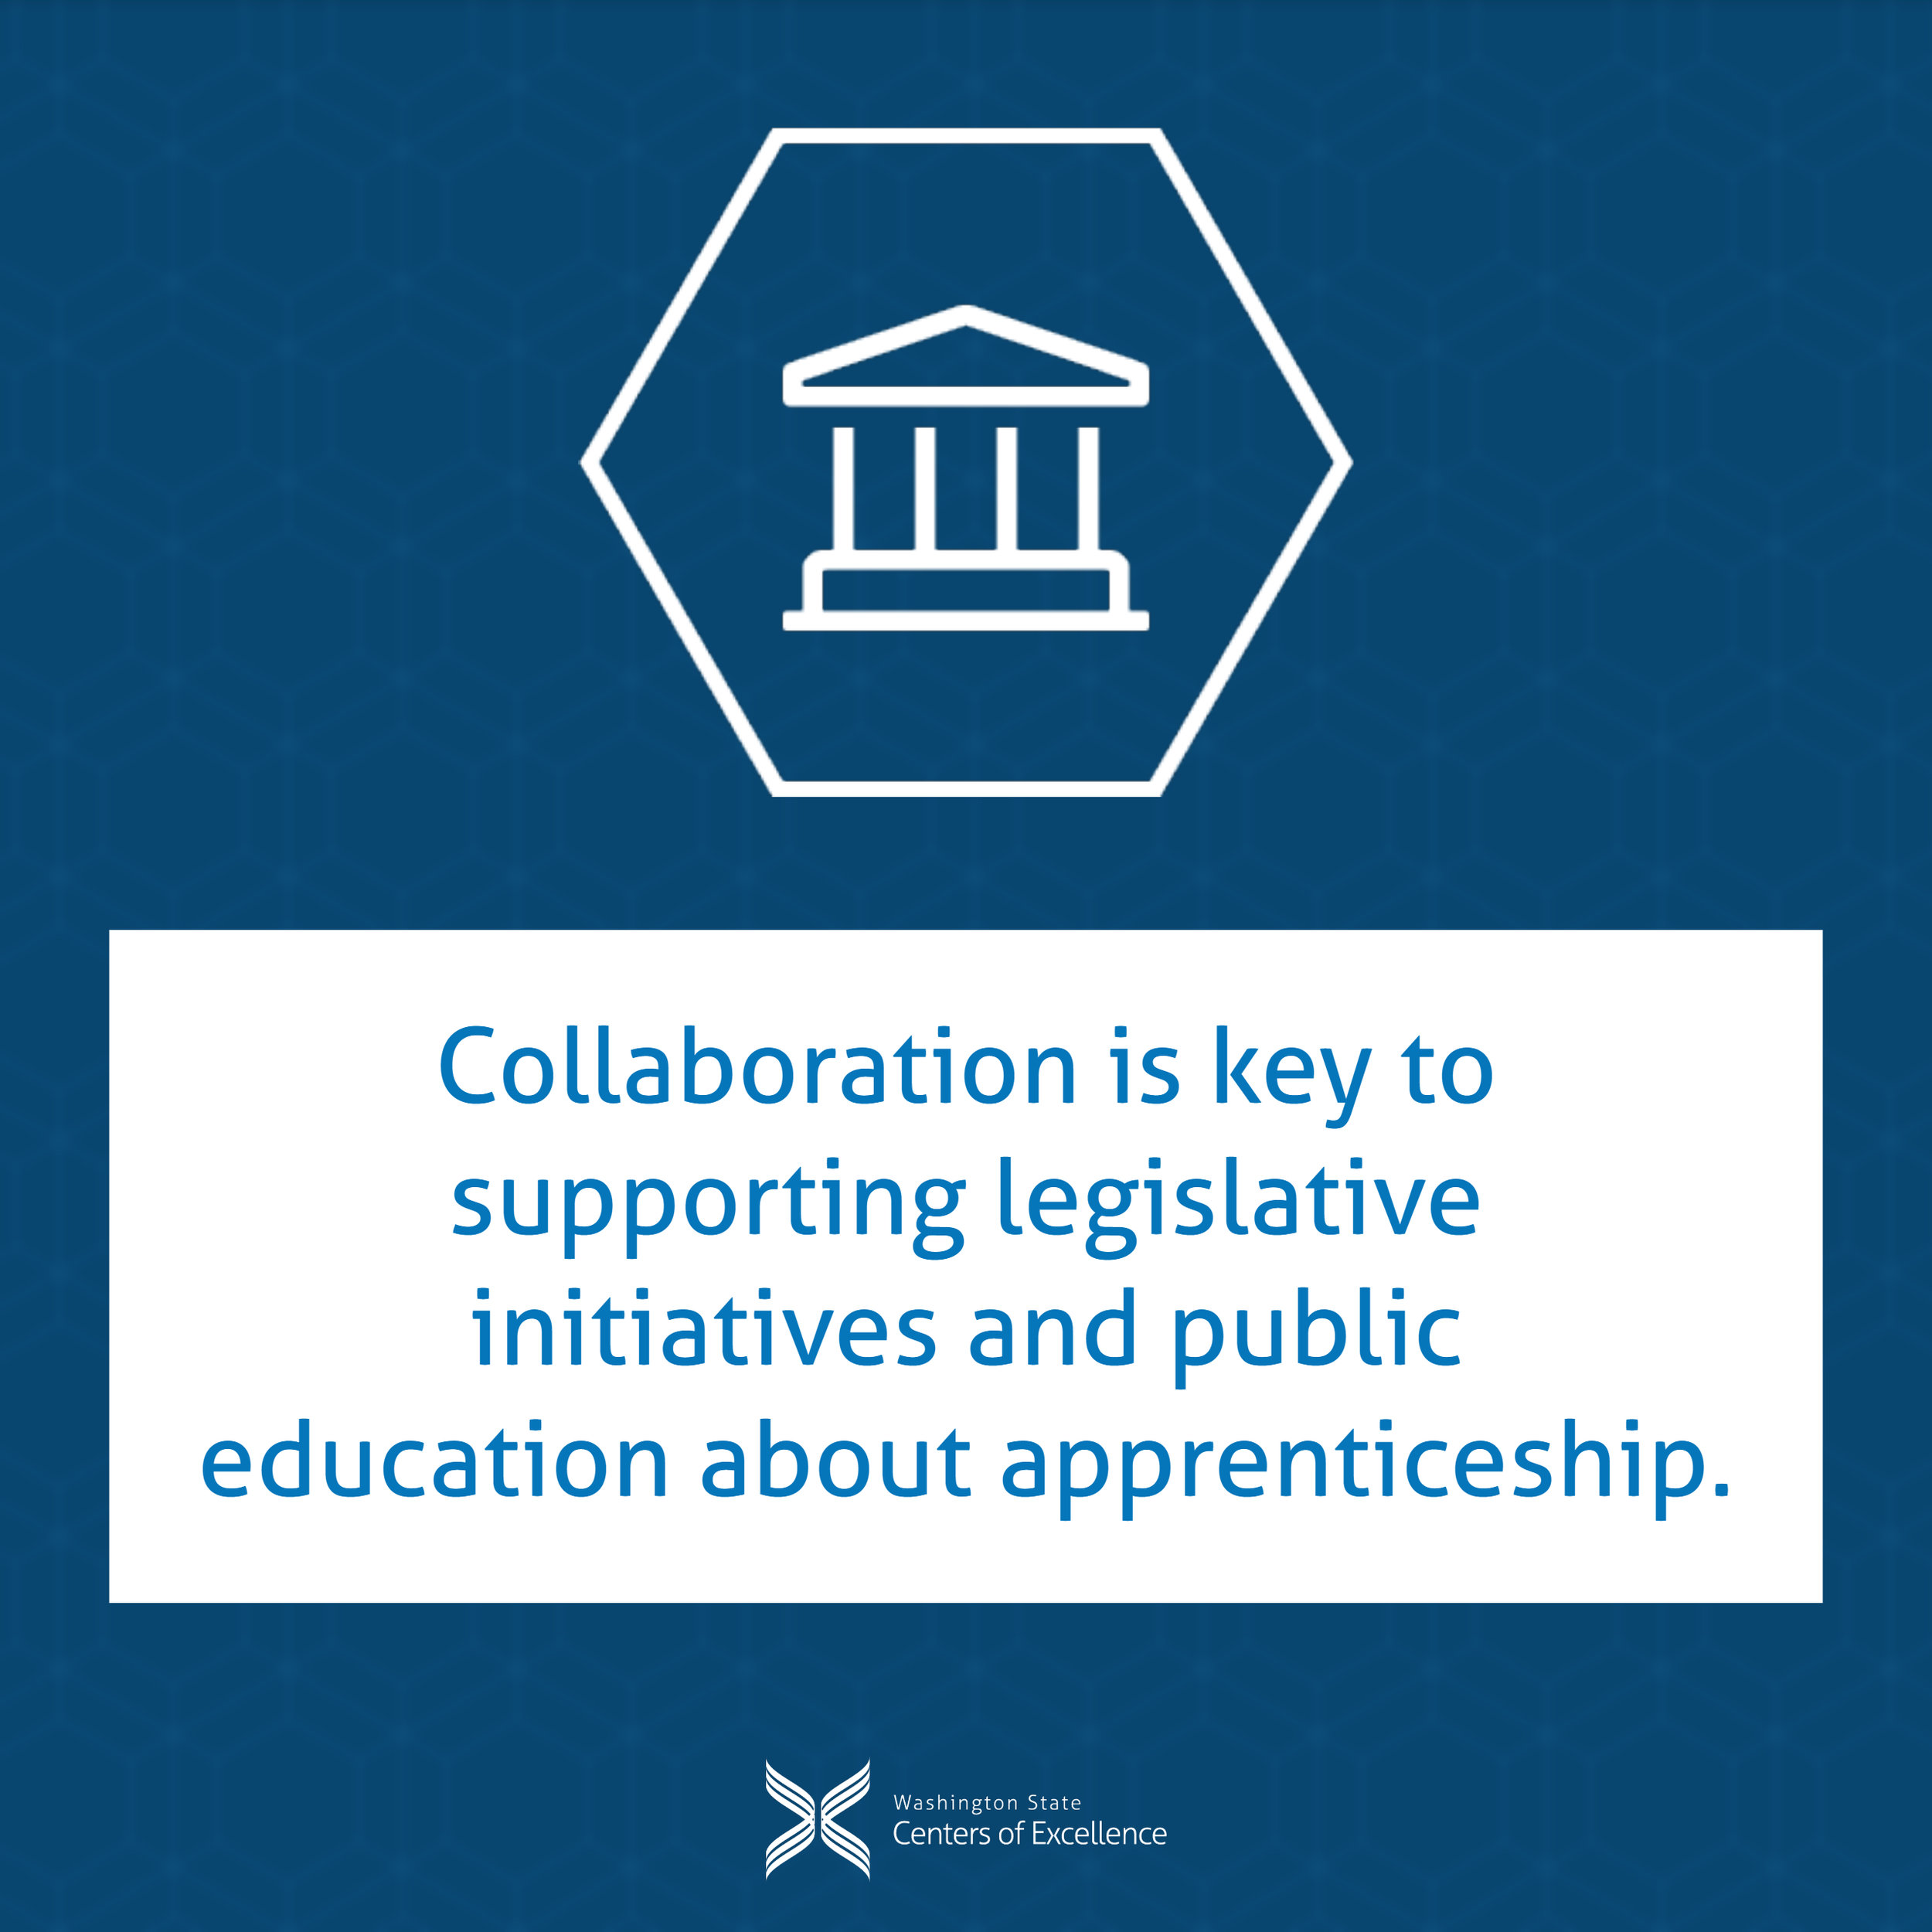 """""""Collaboration is key to supporting legislative initiatives and public education about apprenticeship"""""""